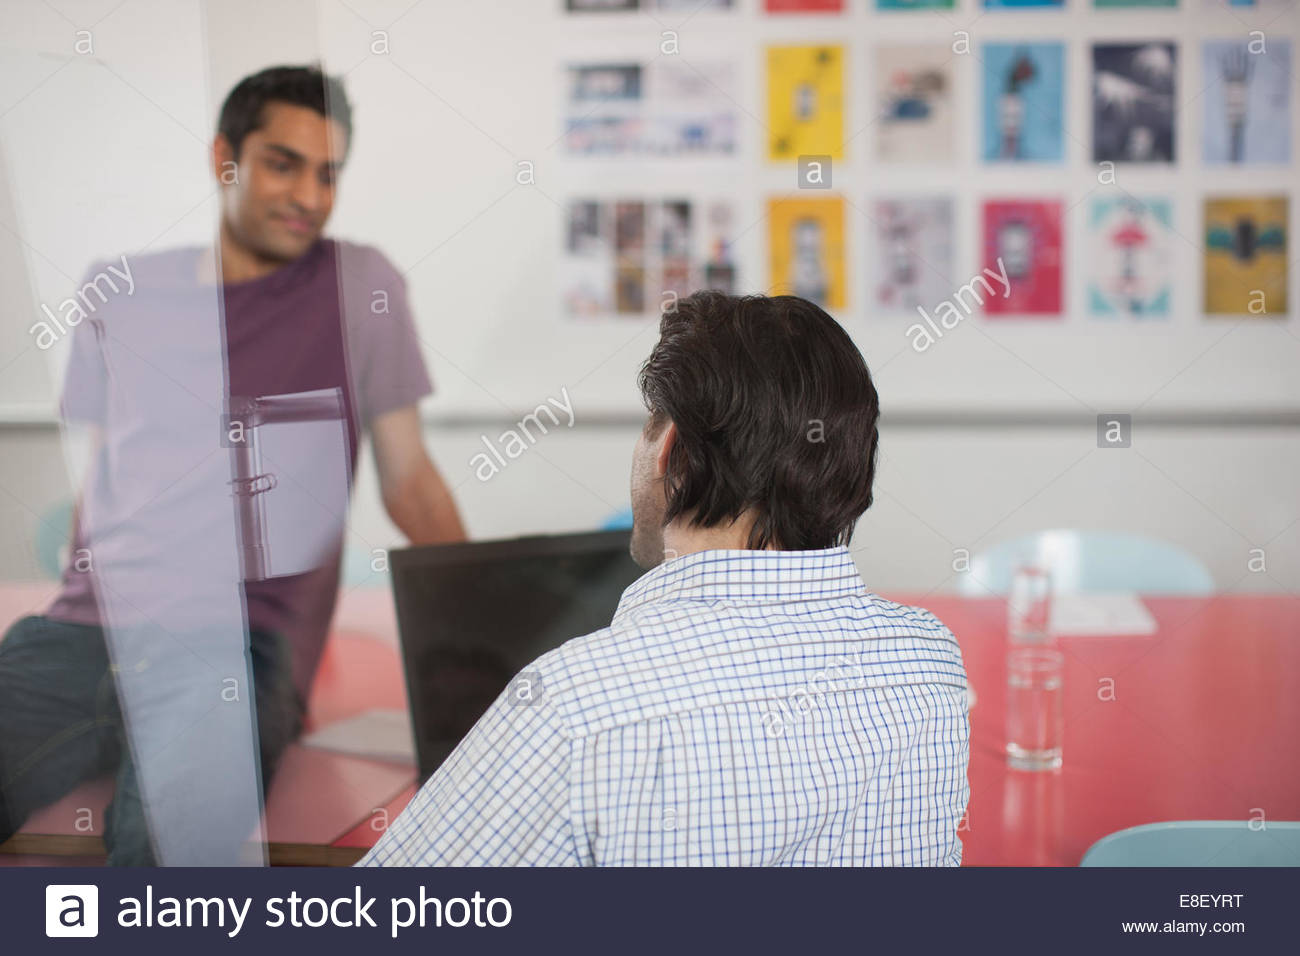 Men talking in meeting - Stock Image